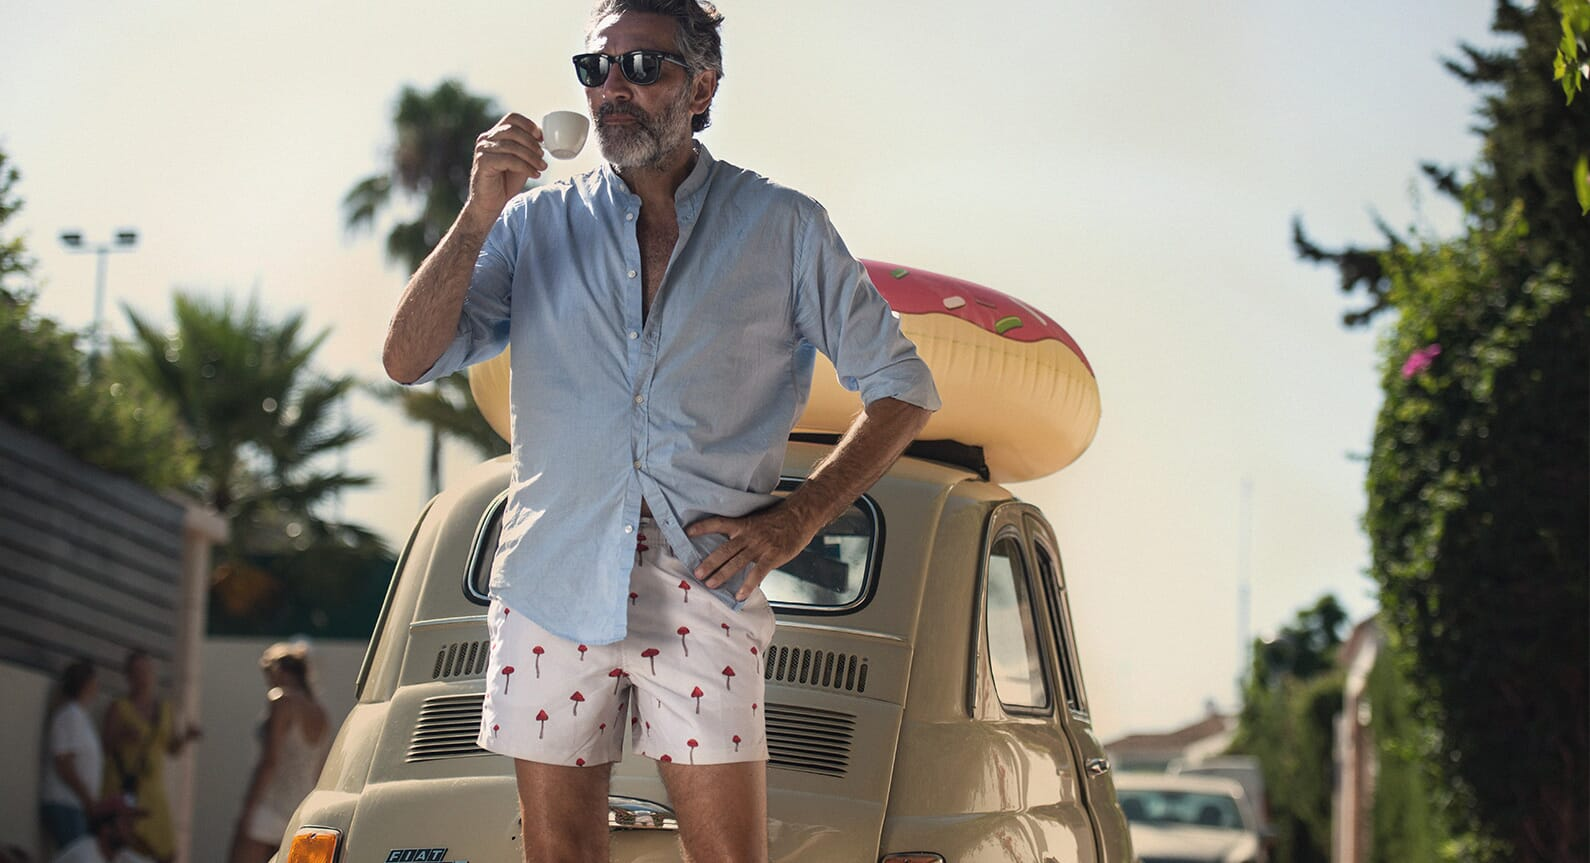 How To Look Good On Holiday Edit #2